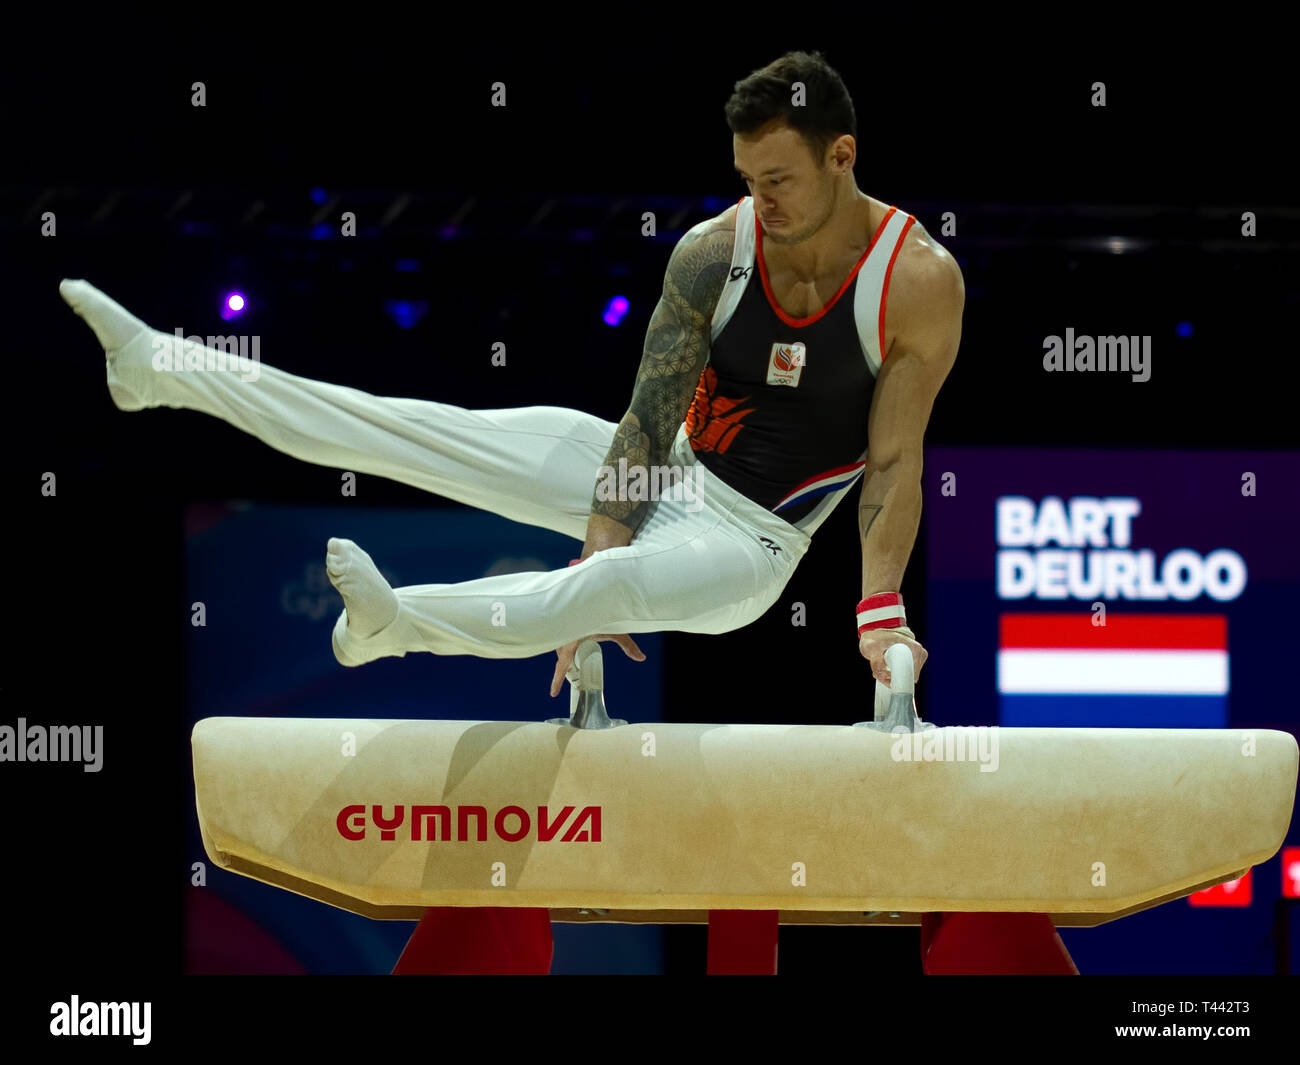 Birmingham, England, UK. 23 March, 2019. The Netherlands' Bart Deurloo in action during the men's pommel horse competition, during the 2019 Gymnastics - Stock Image